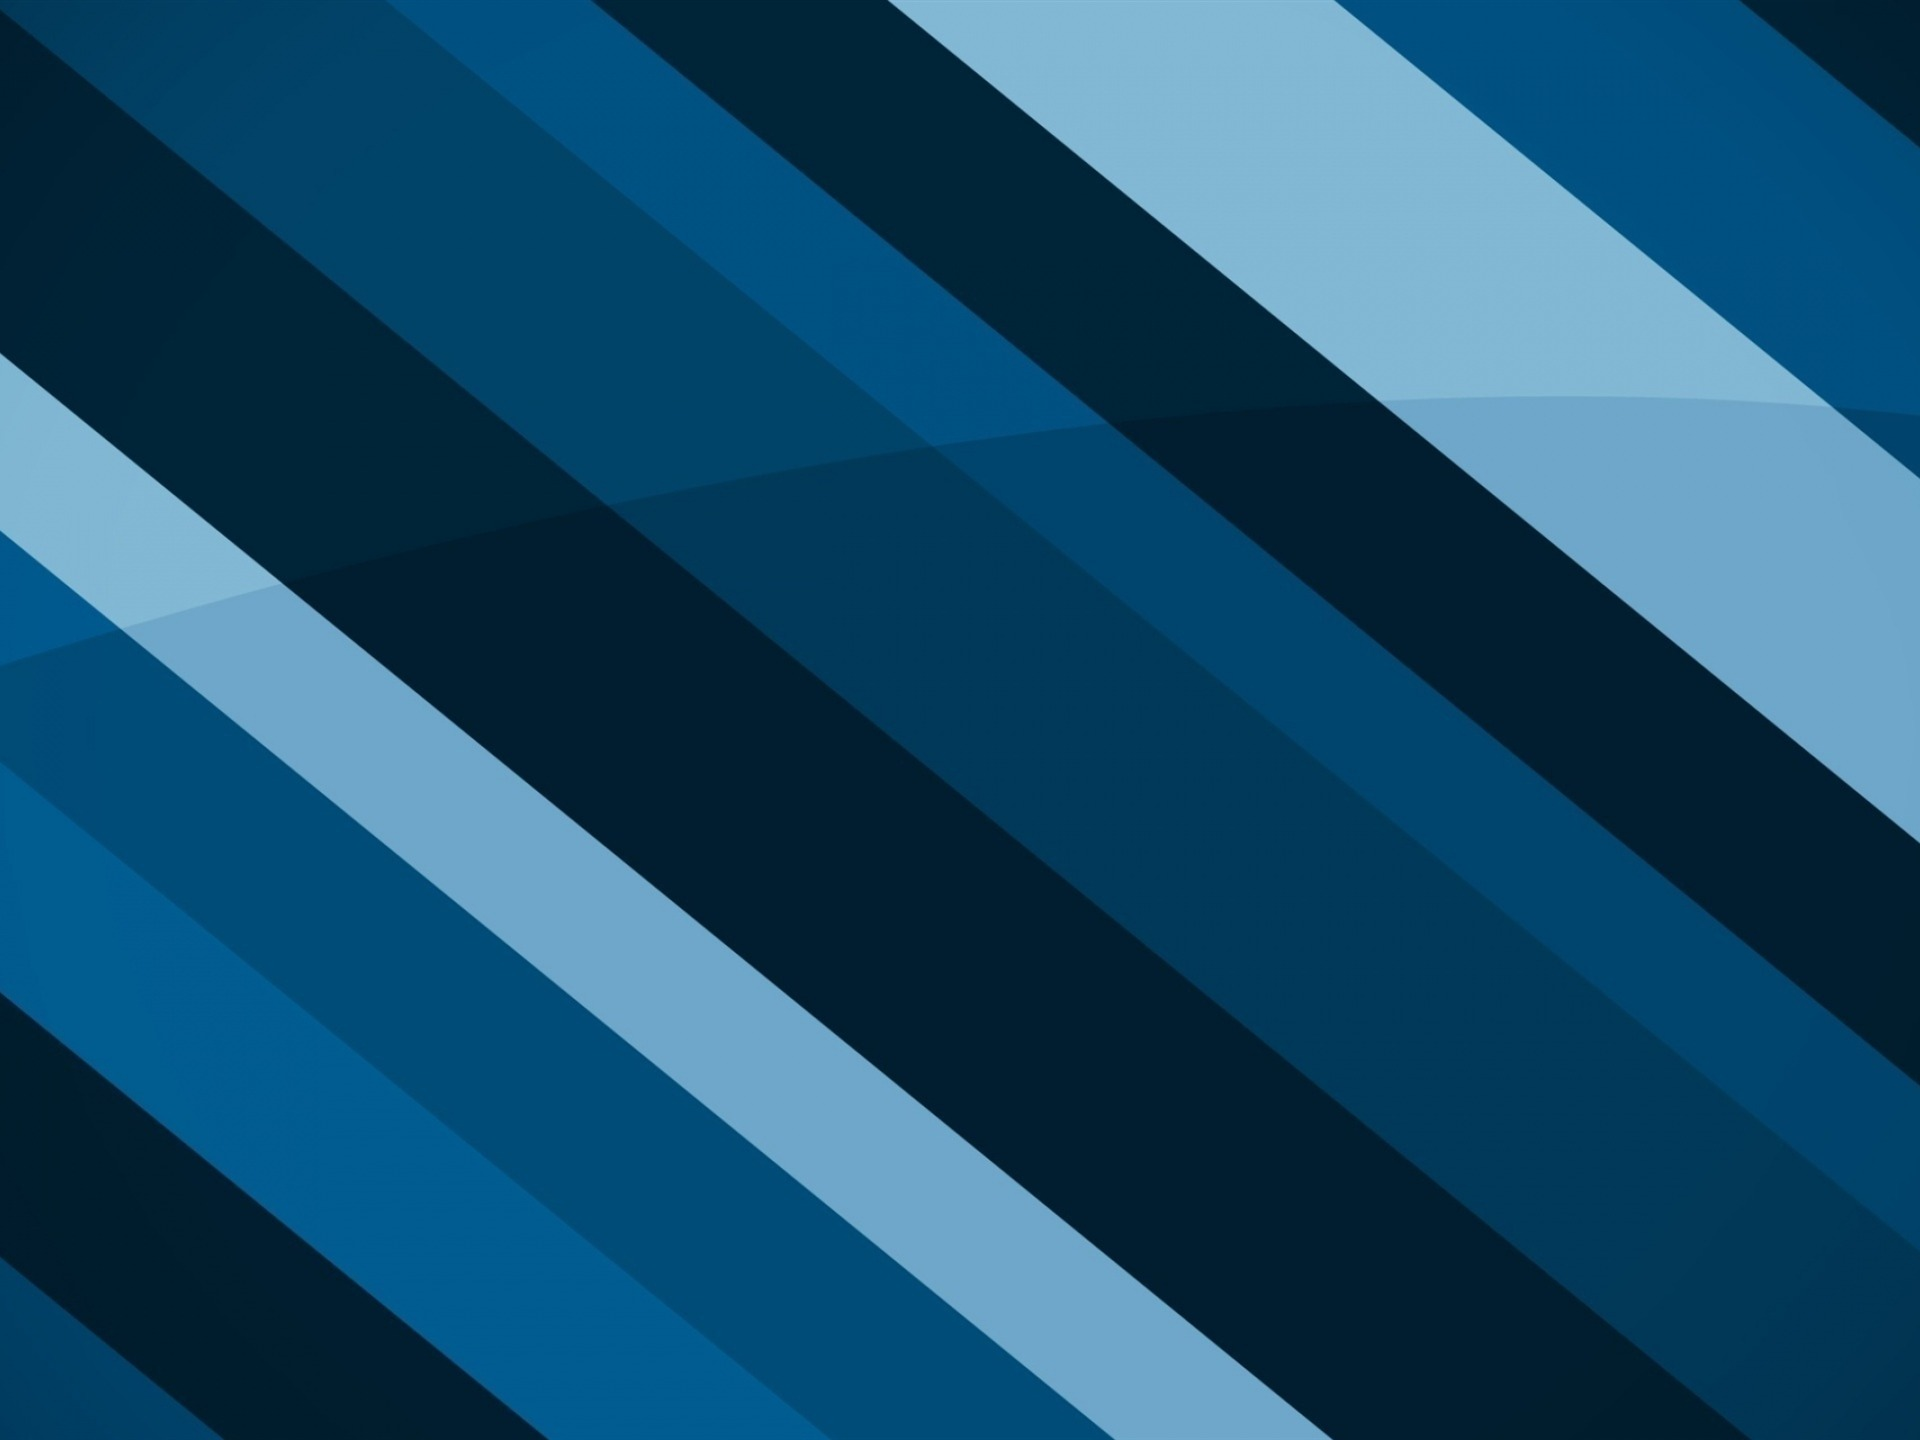 Line Gray Blue Obliquely Design Abstract Wallpaper Preview